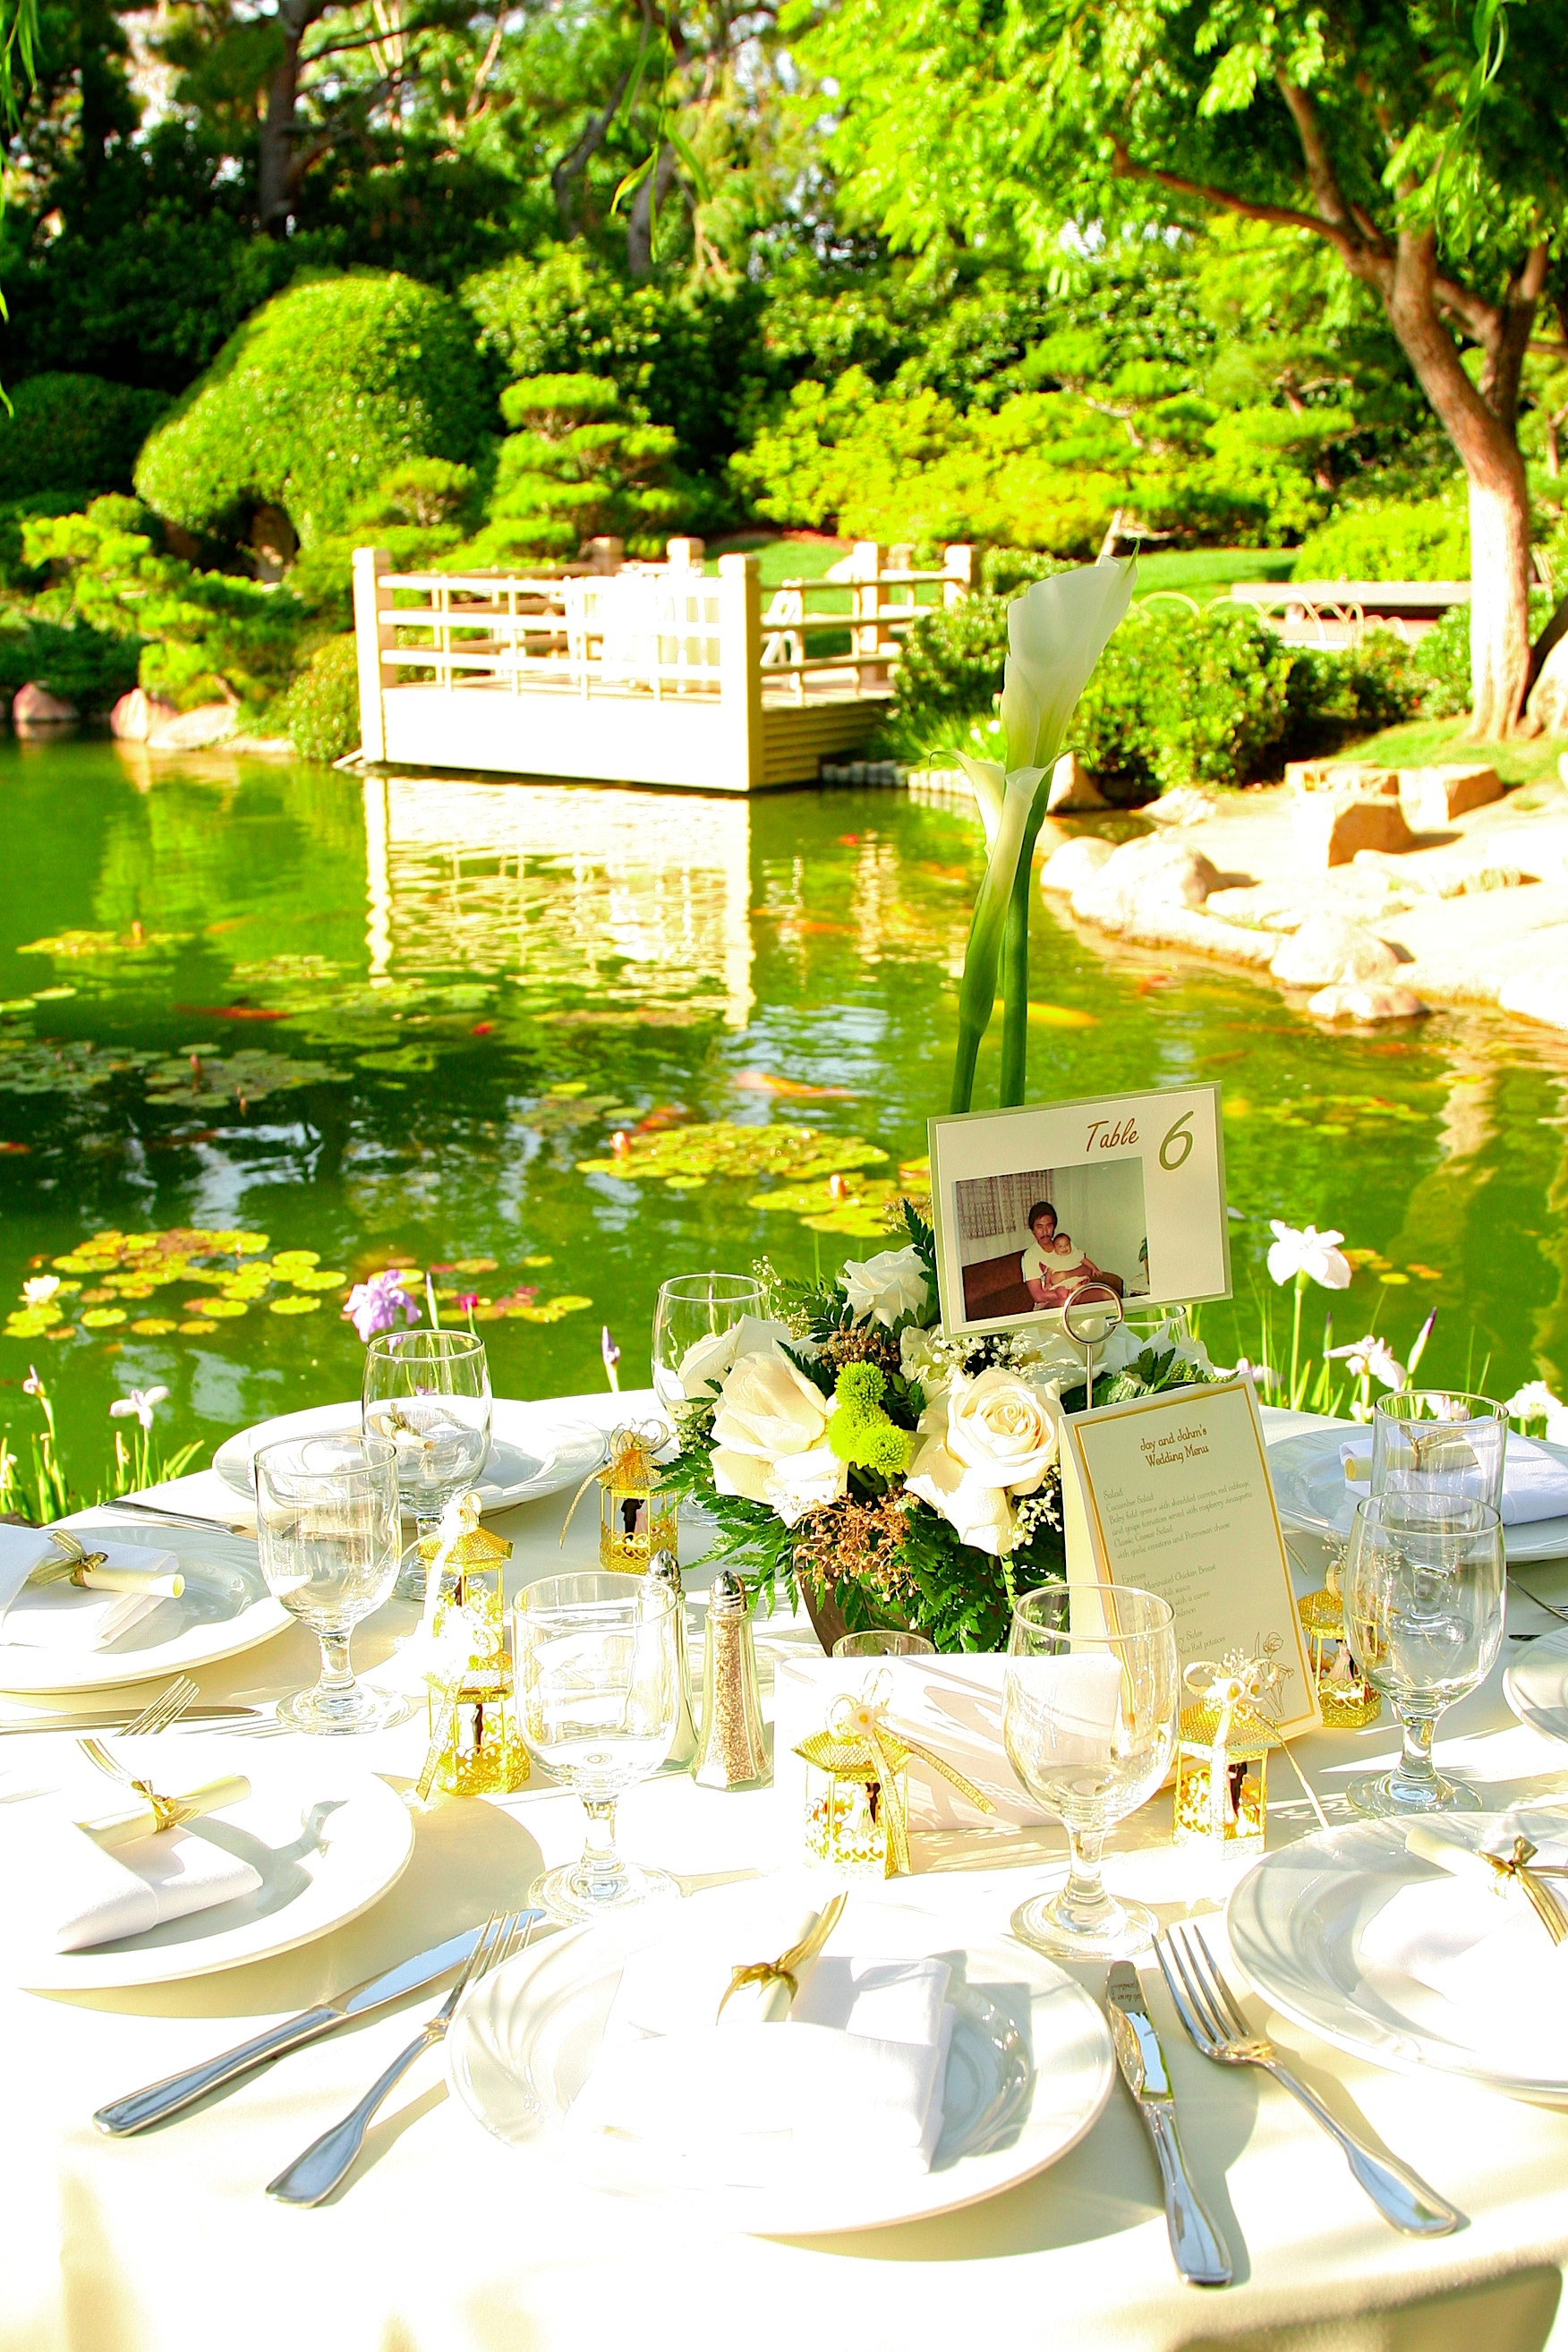 Reception, Flowers & Decor, Favors & Gifts, green, gold, Favors, Flowers